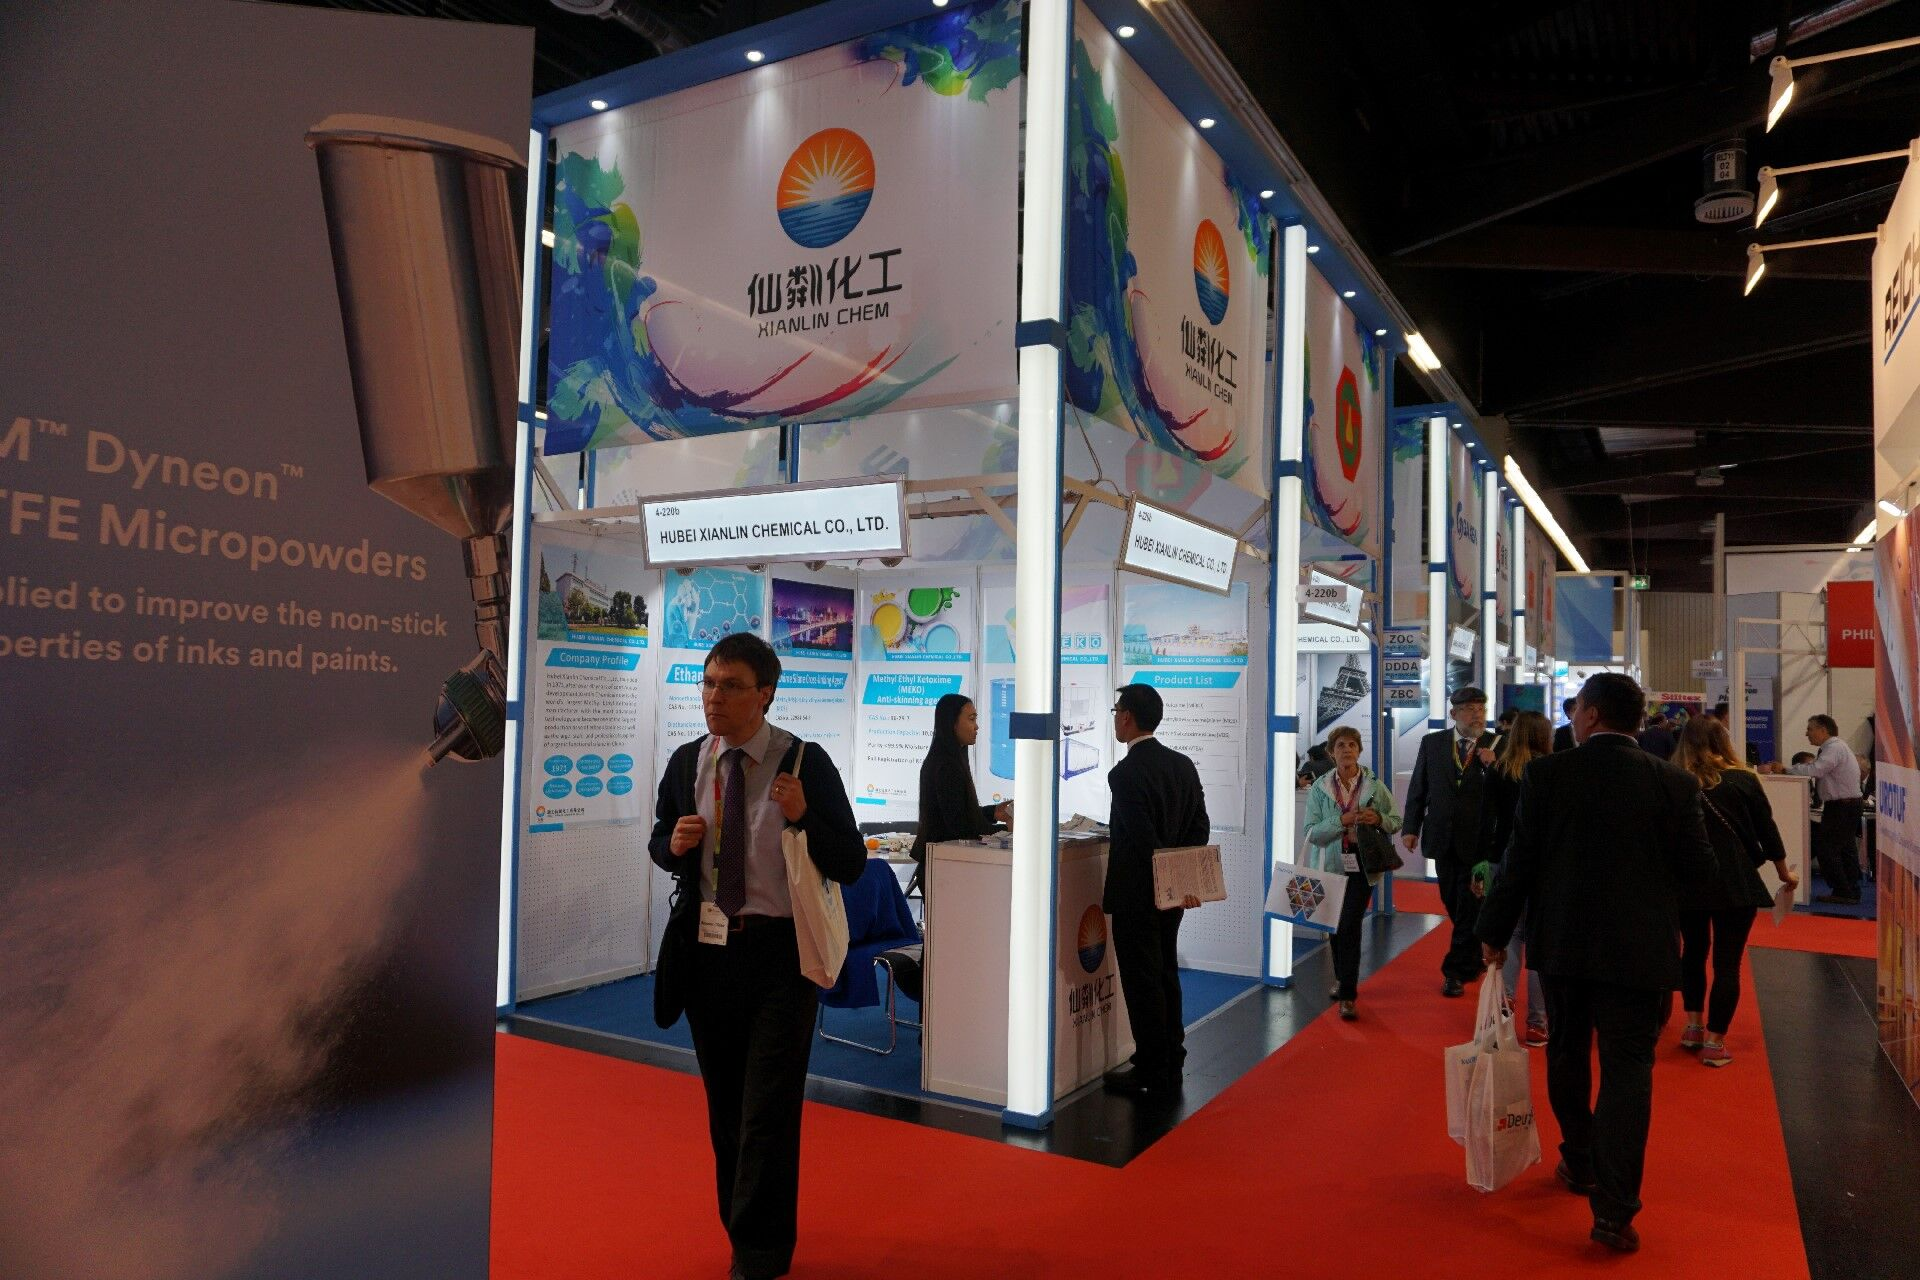 Hubei Xianlin Chemical Co., Ltd. in ECS 2017 in Germany